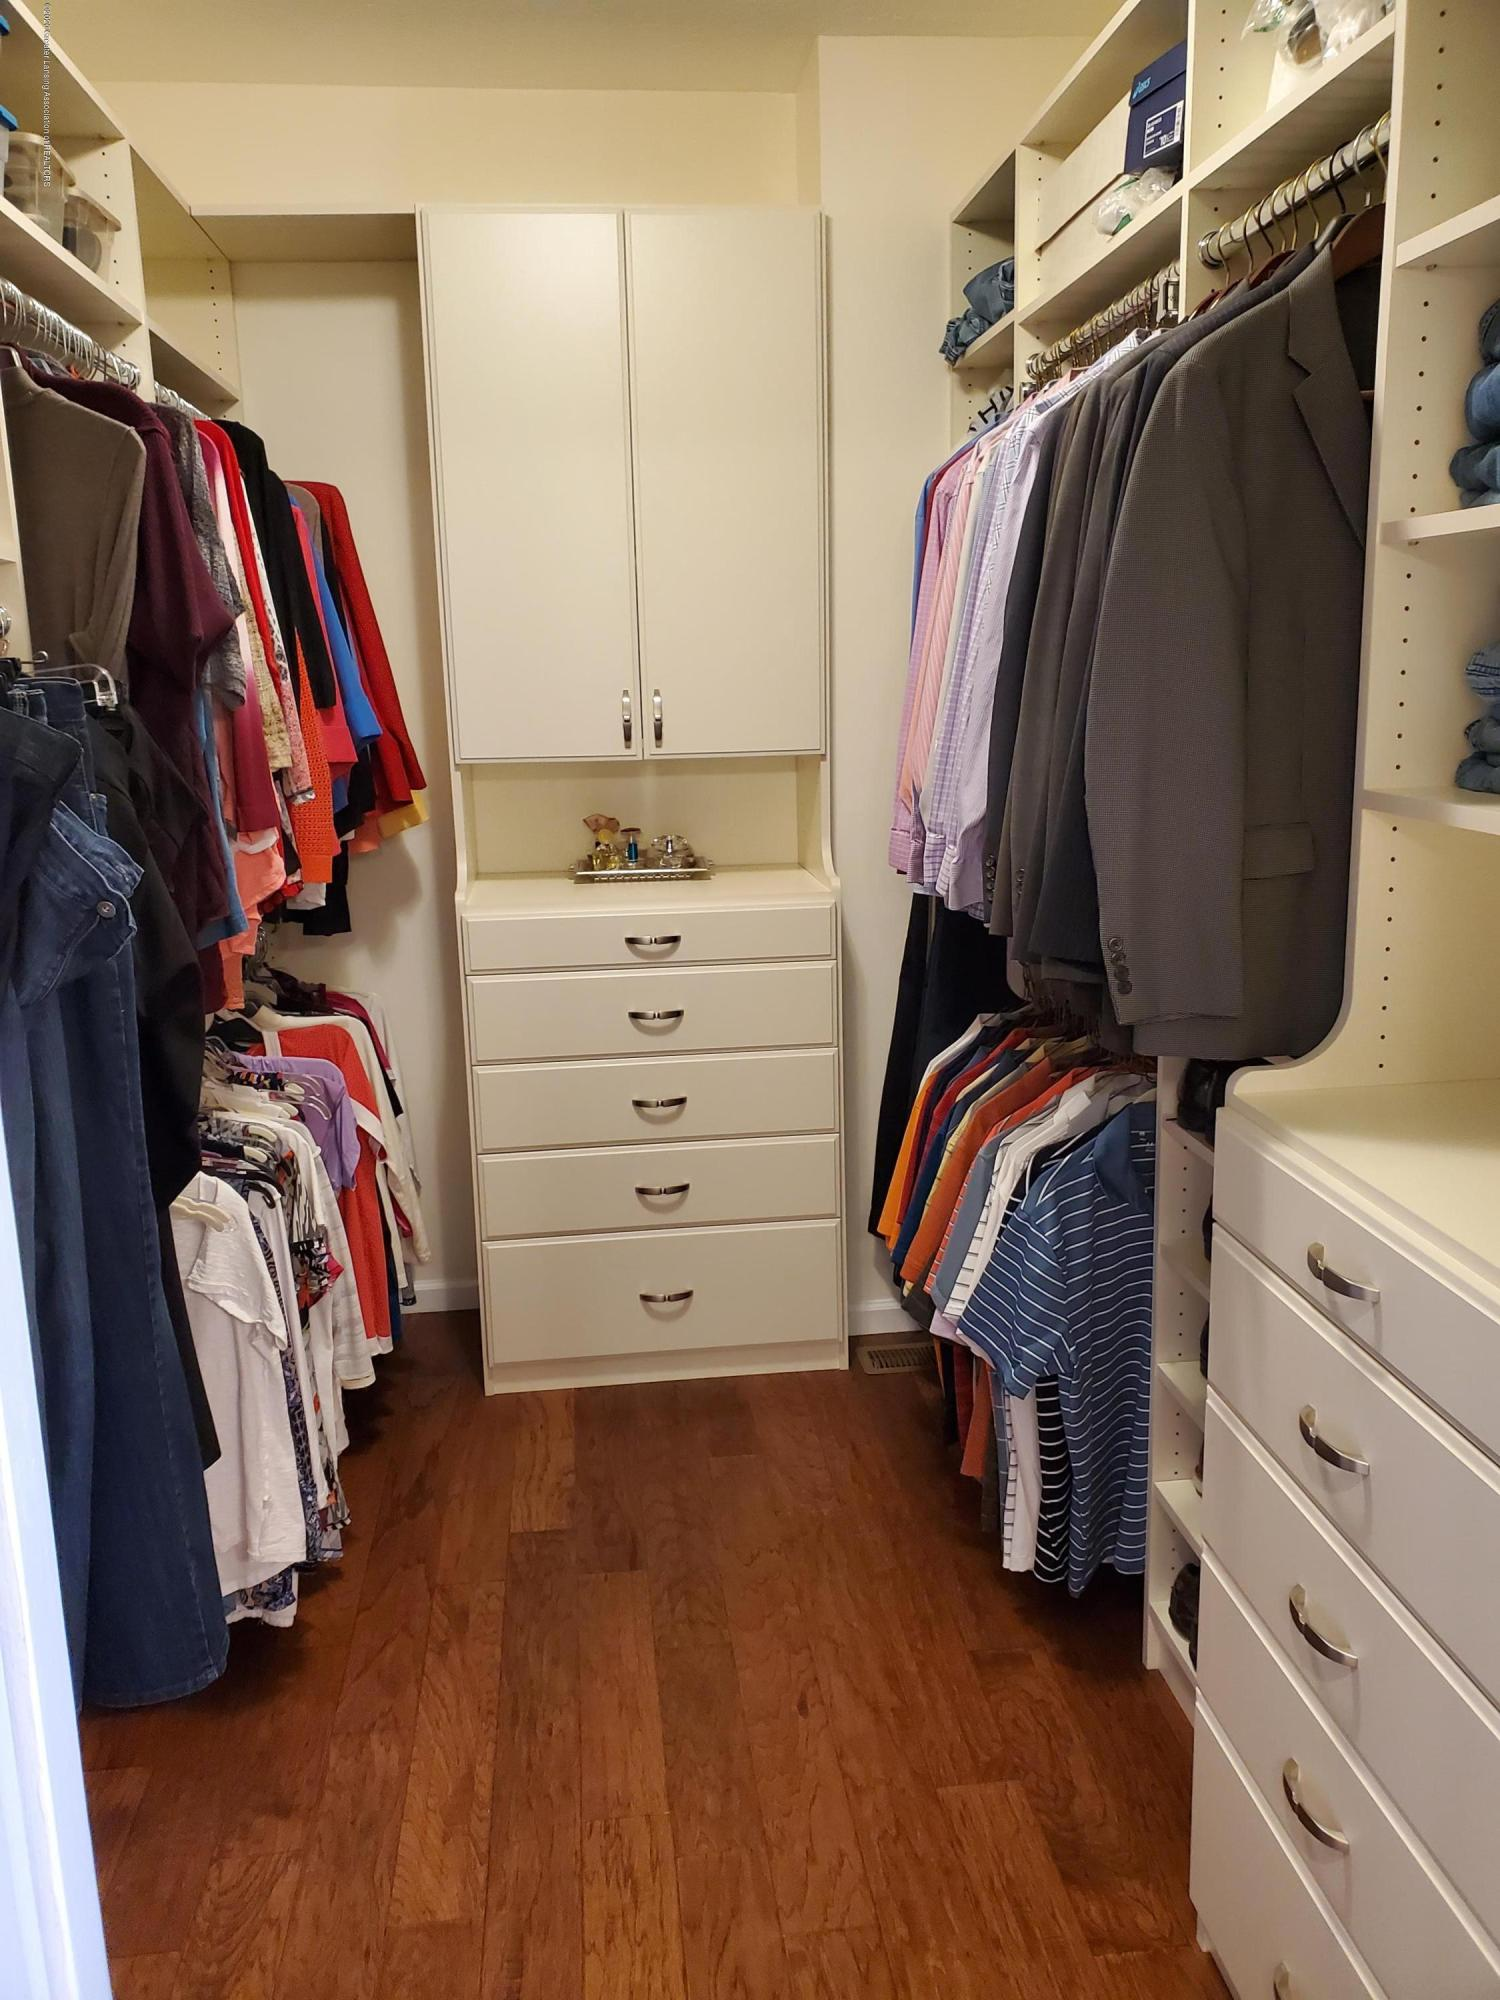 558 N Wheaton Rd - Walk In Closet - 35